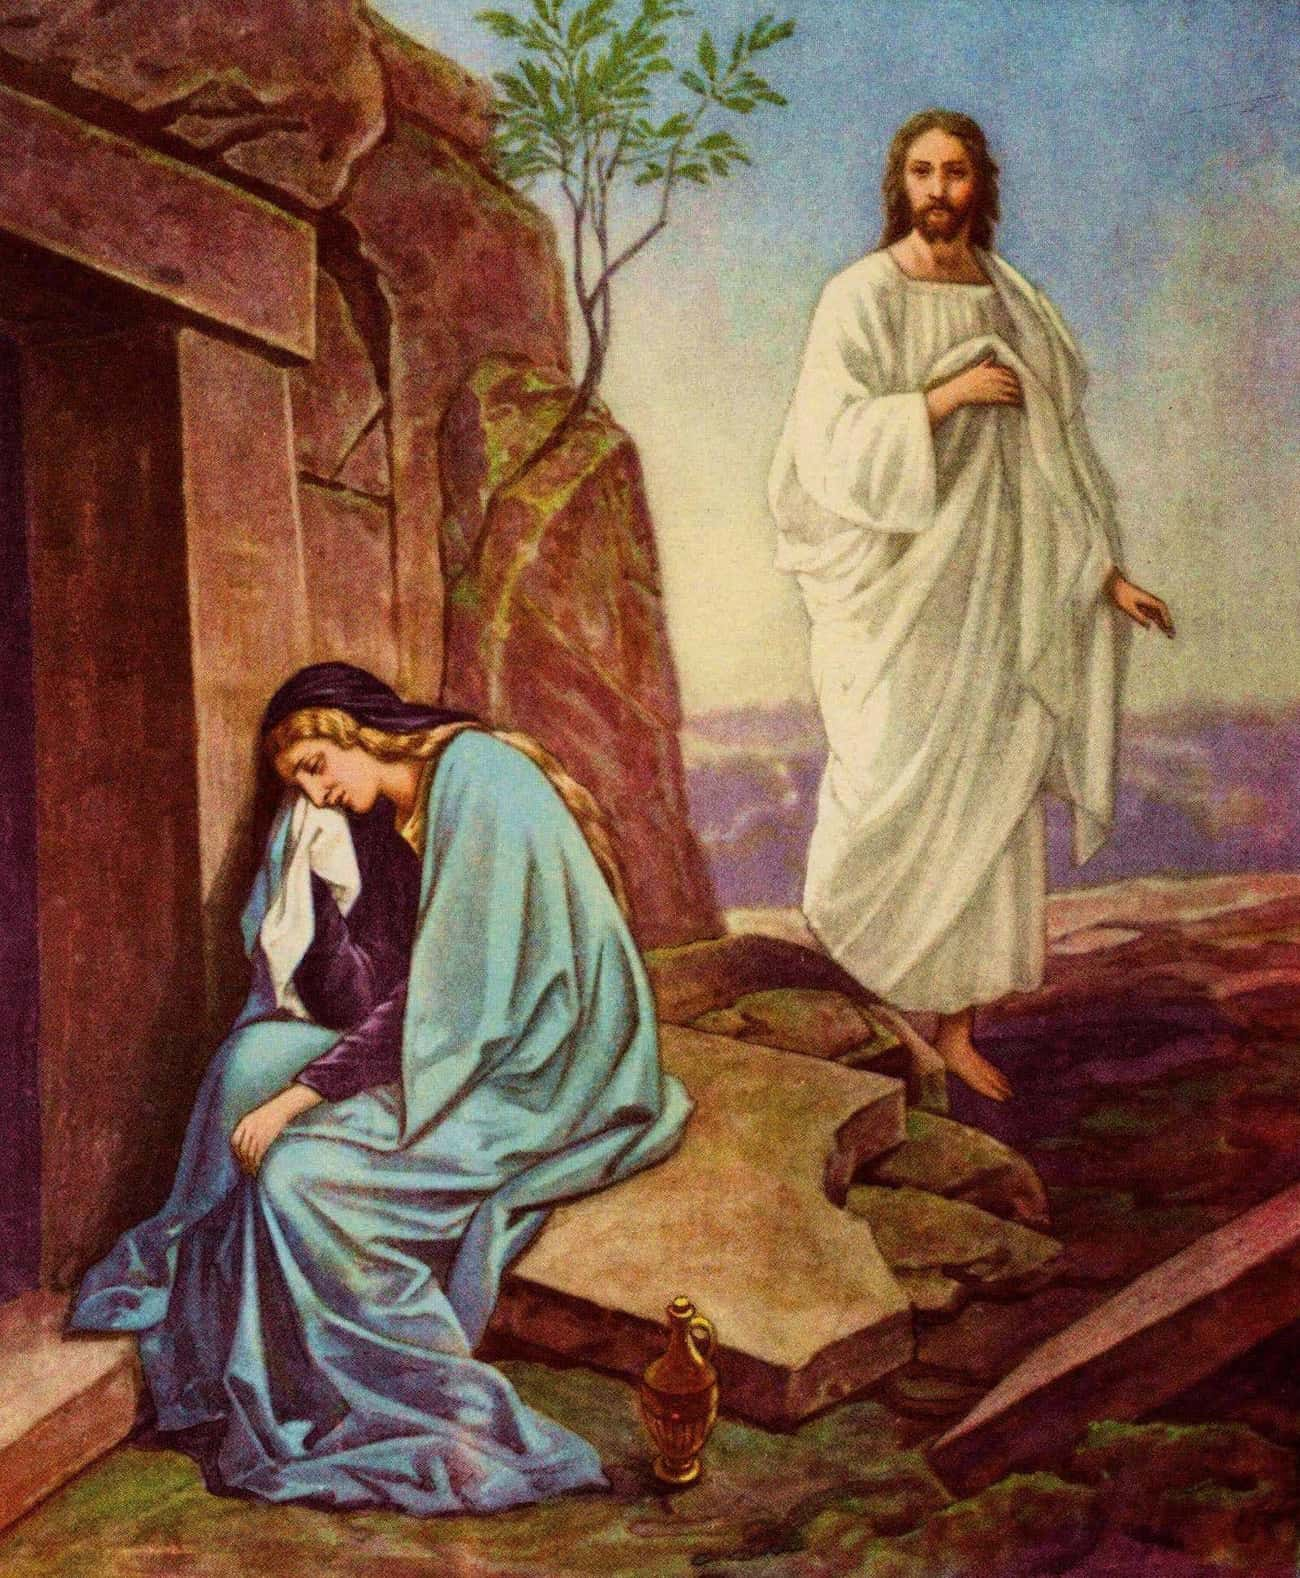 The Gospel Might Reinforce The is listed (or ranked) 3 on the list The Gospel Of Thomas Has Some Evidence That One Of Jesus' Disciples Was His Twin Brother